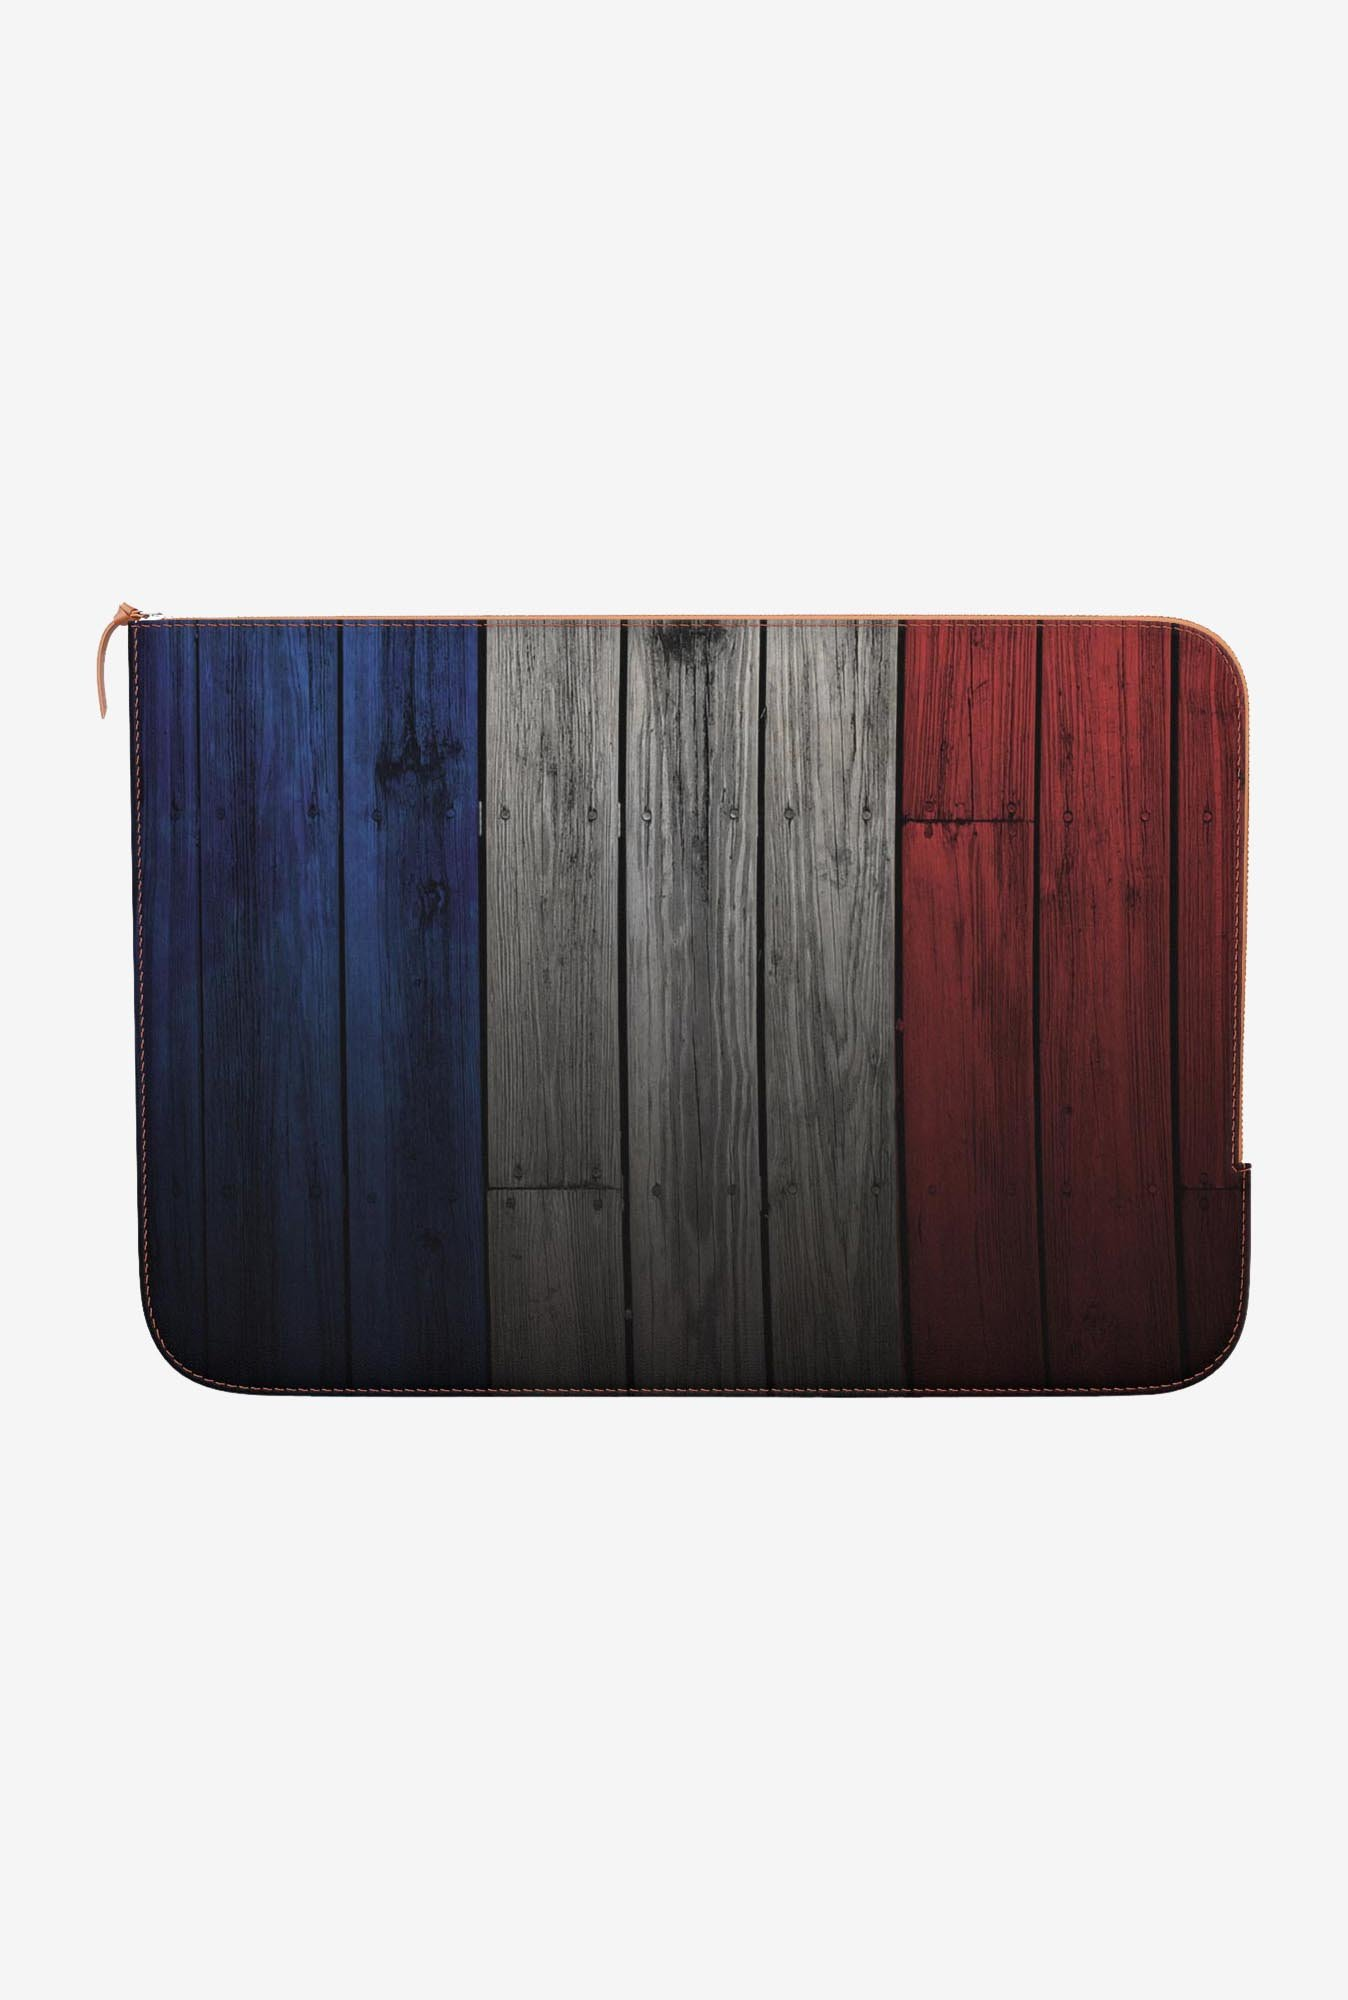 DailyObjects The French MacBook 12 Zippered Sleeve